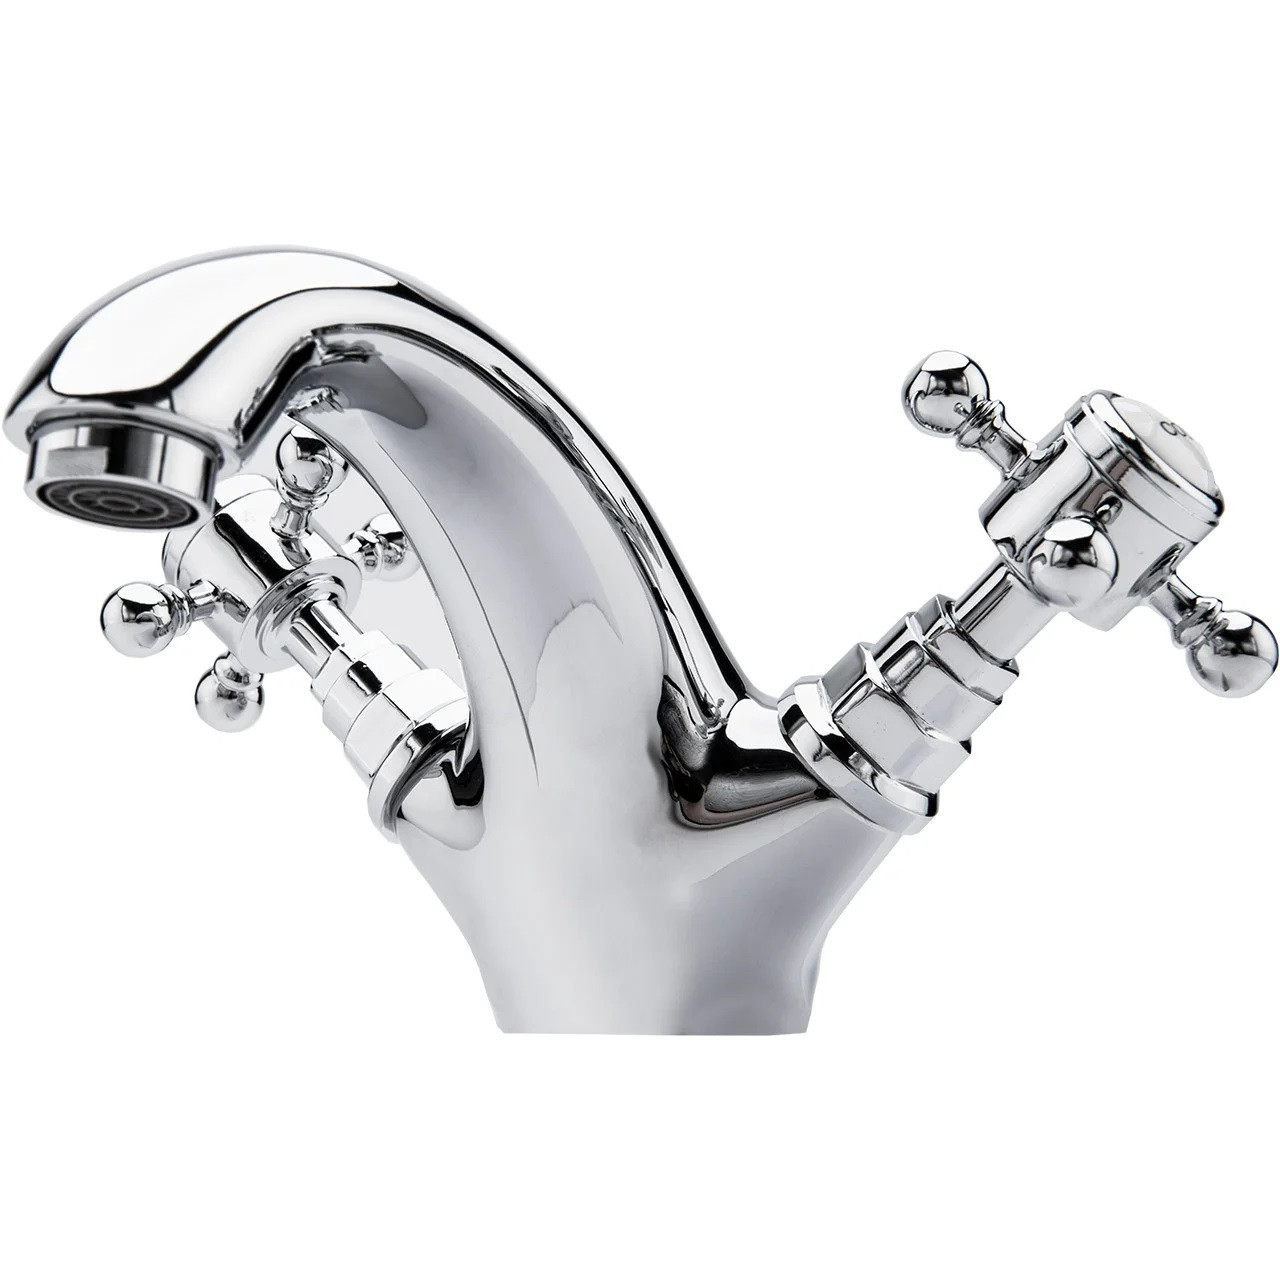 Balmoral Traditional Mono Basin Mixer Tap